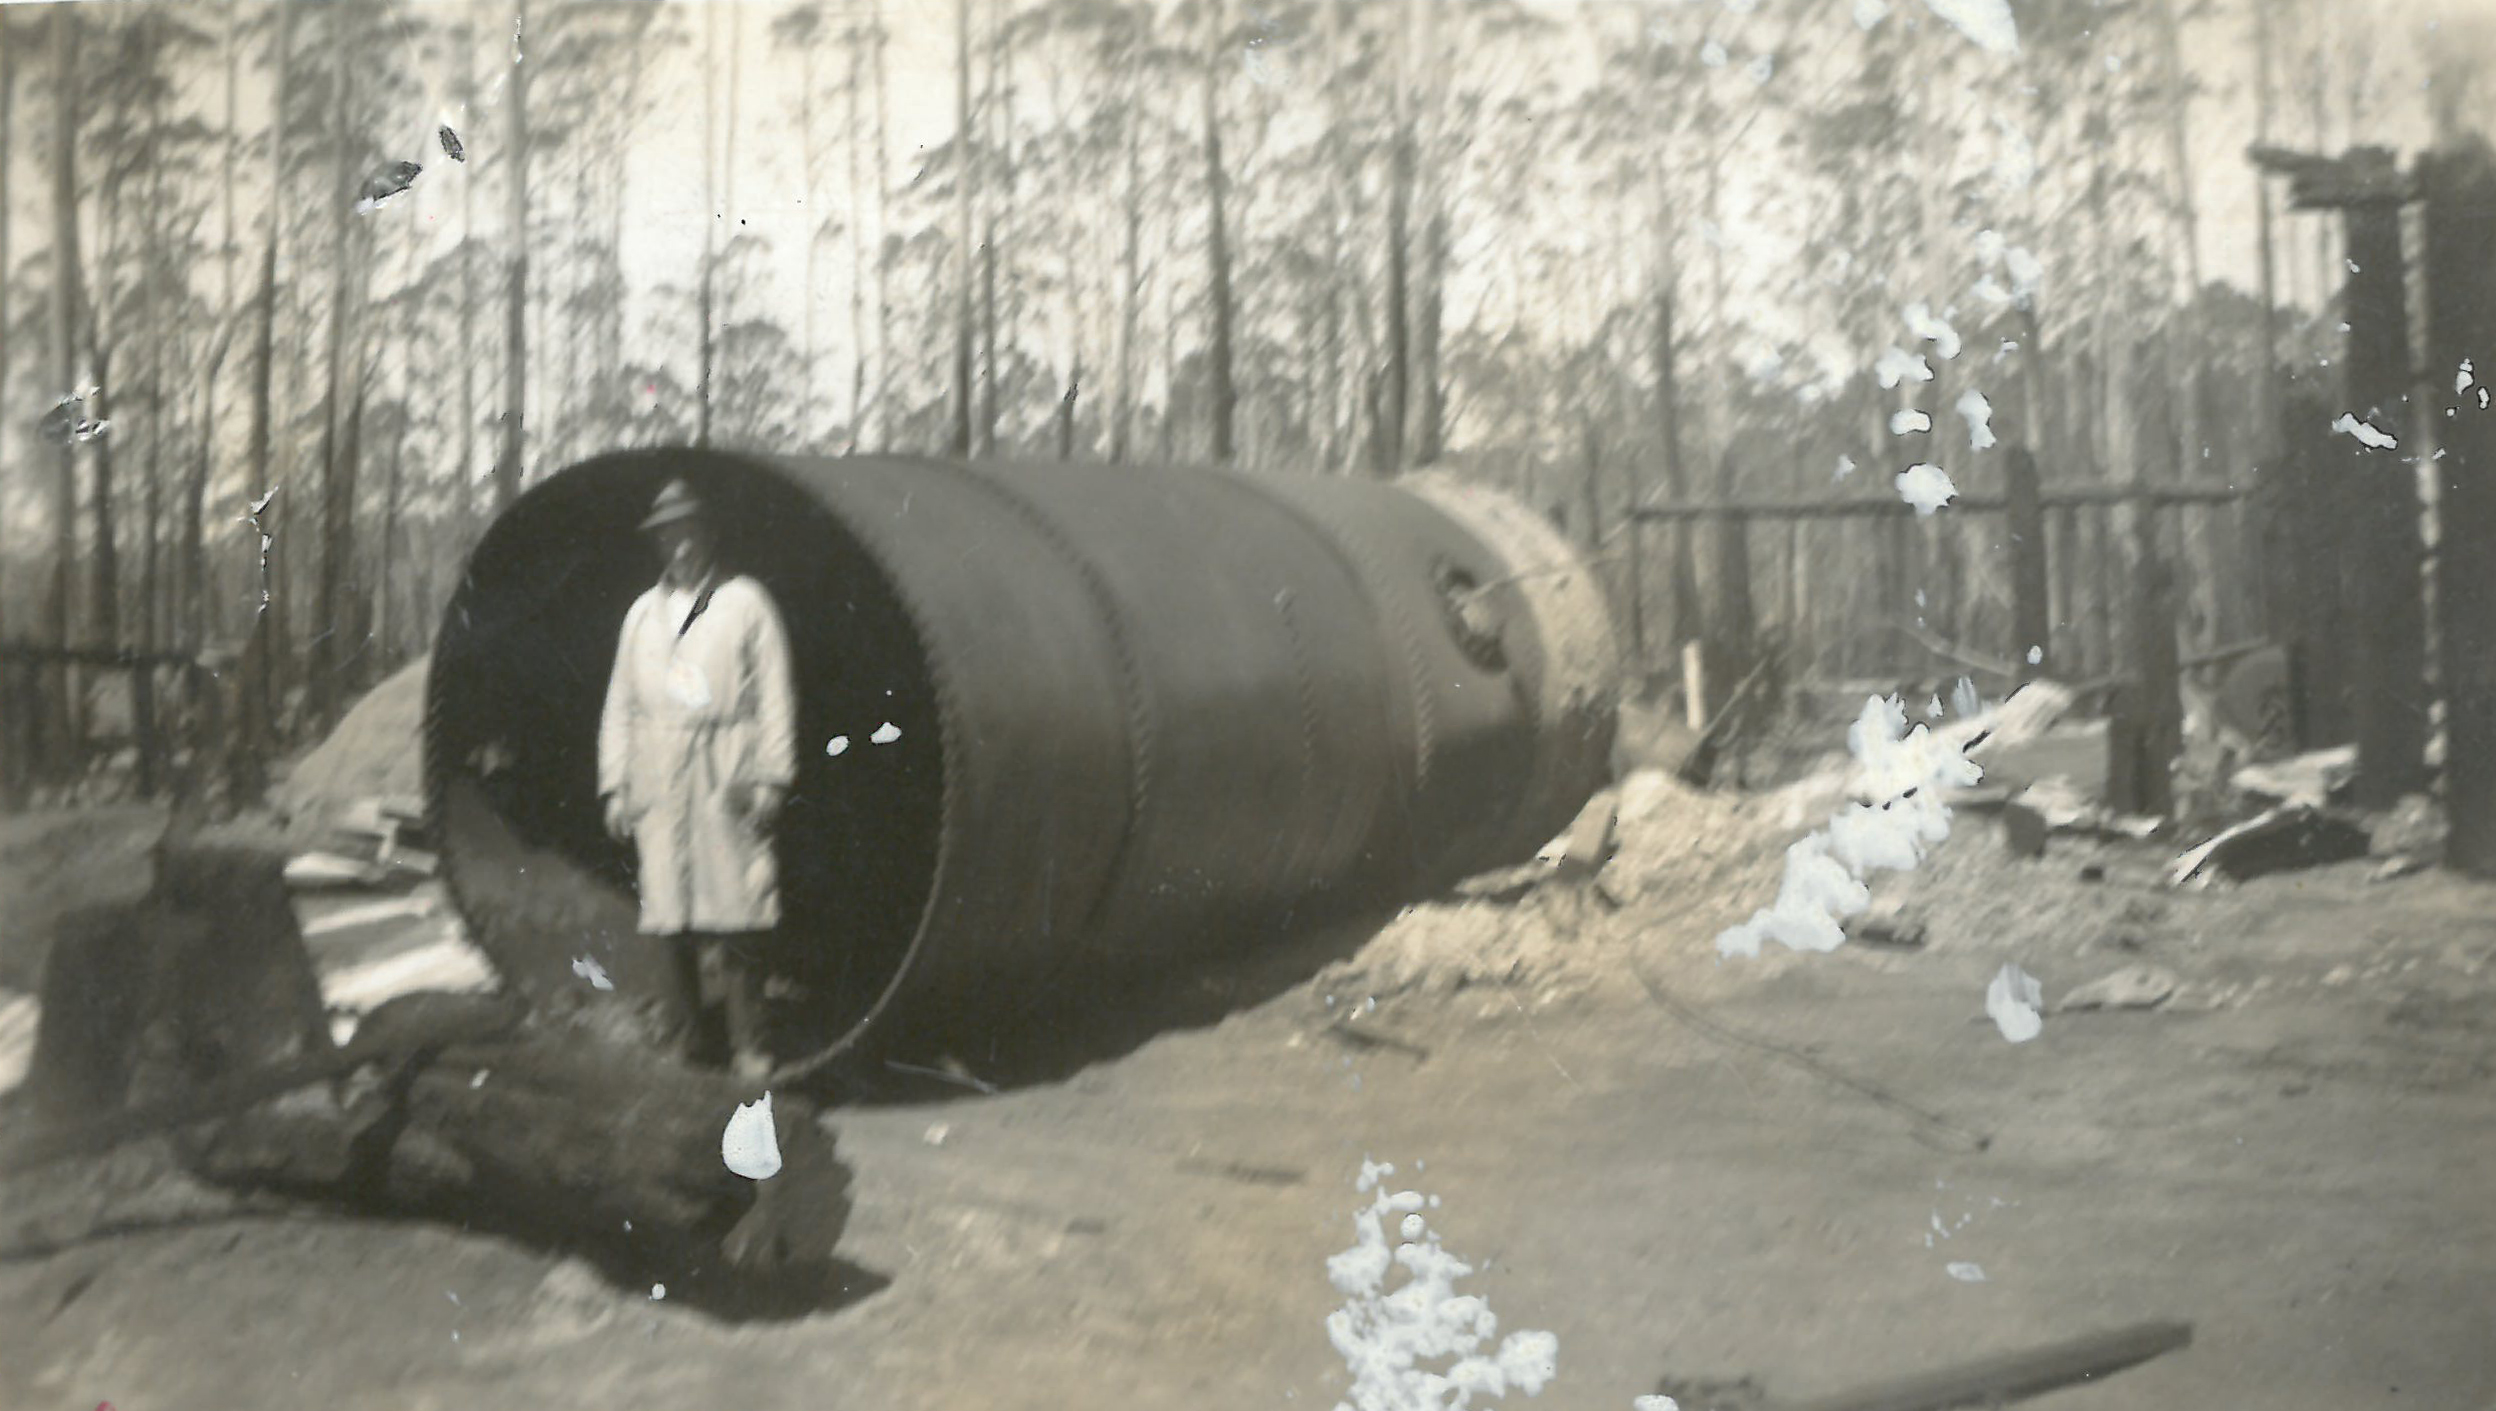 black and white photo of tank with burned landscape around and man in front